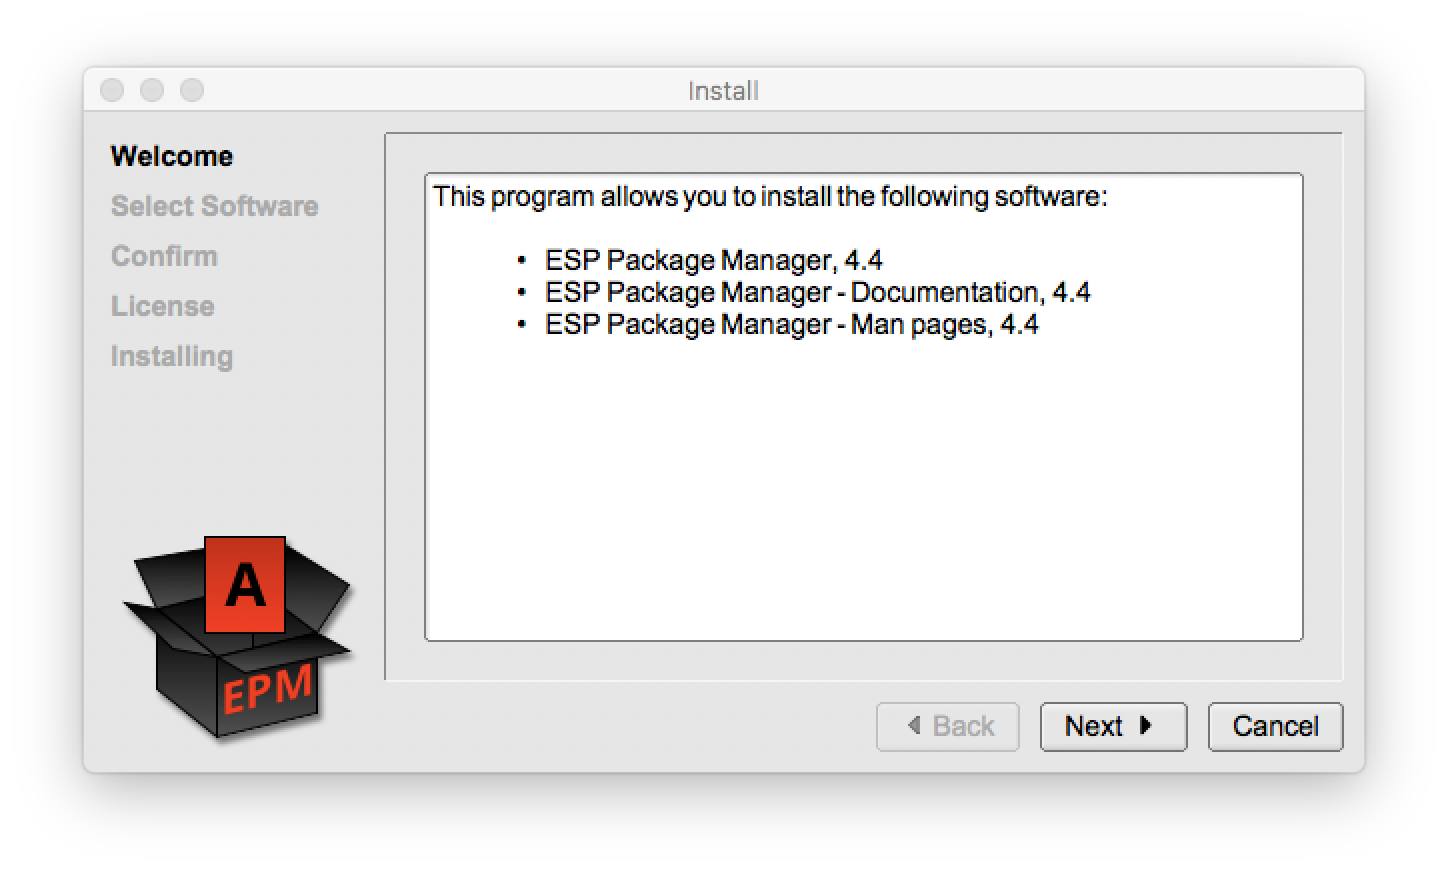 Software Distribution with ESP Package Manager